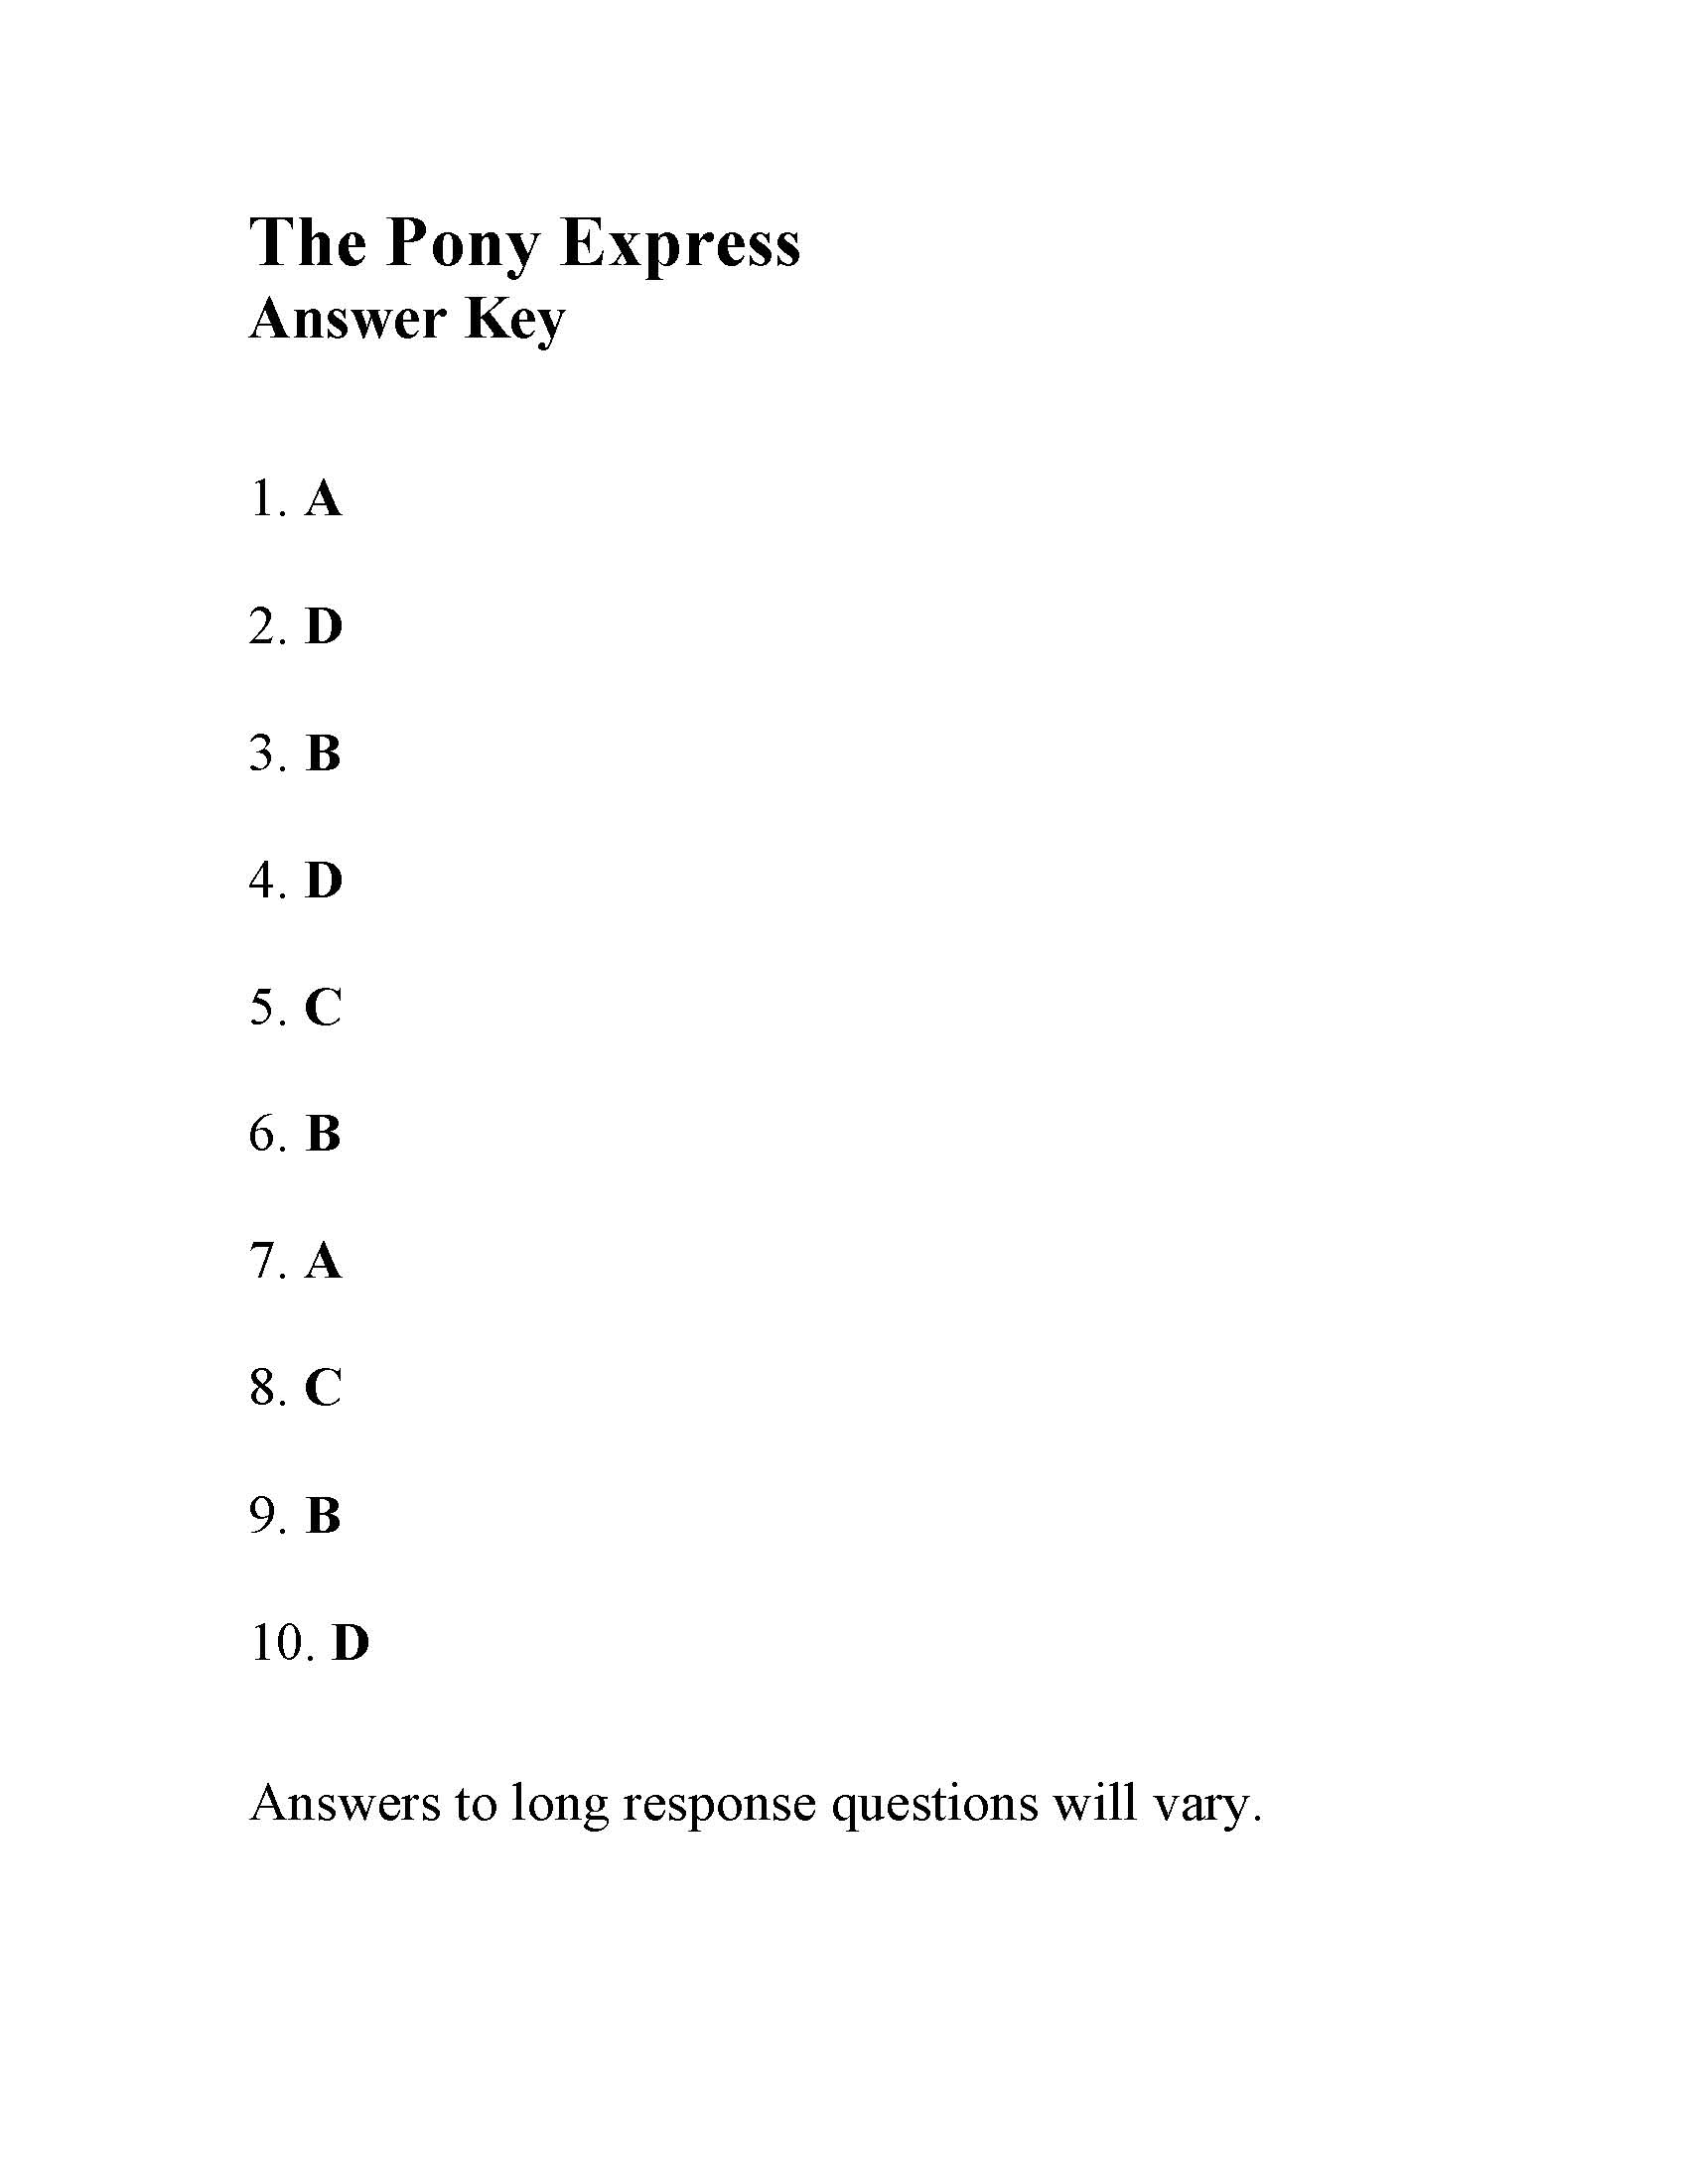 This is the answer key for the The Pony Express.